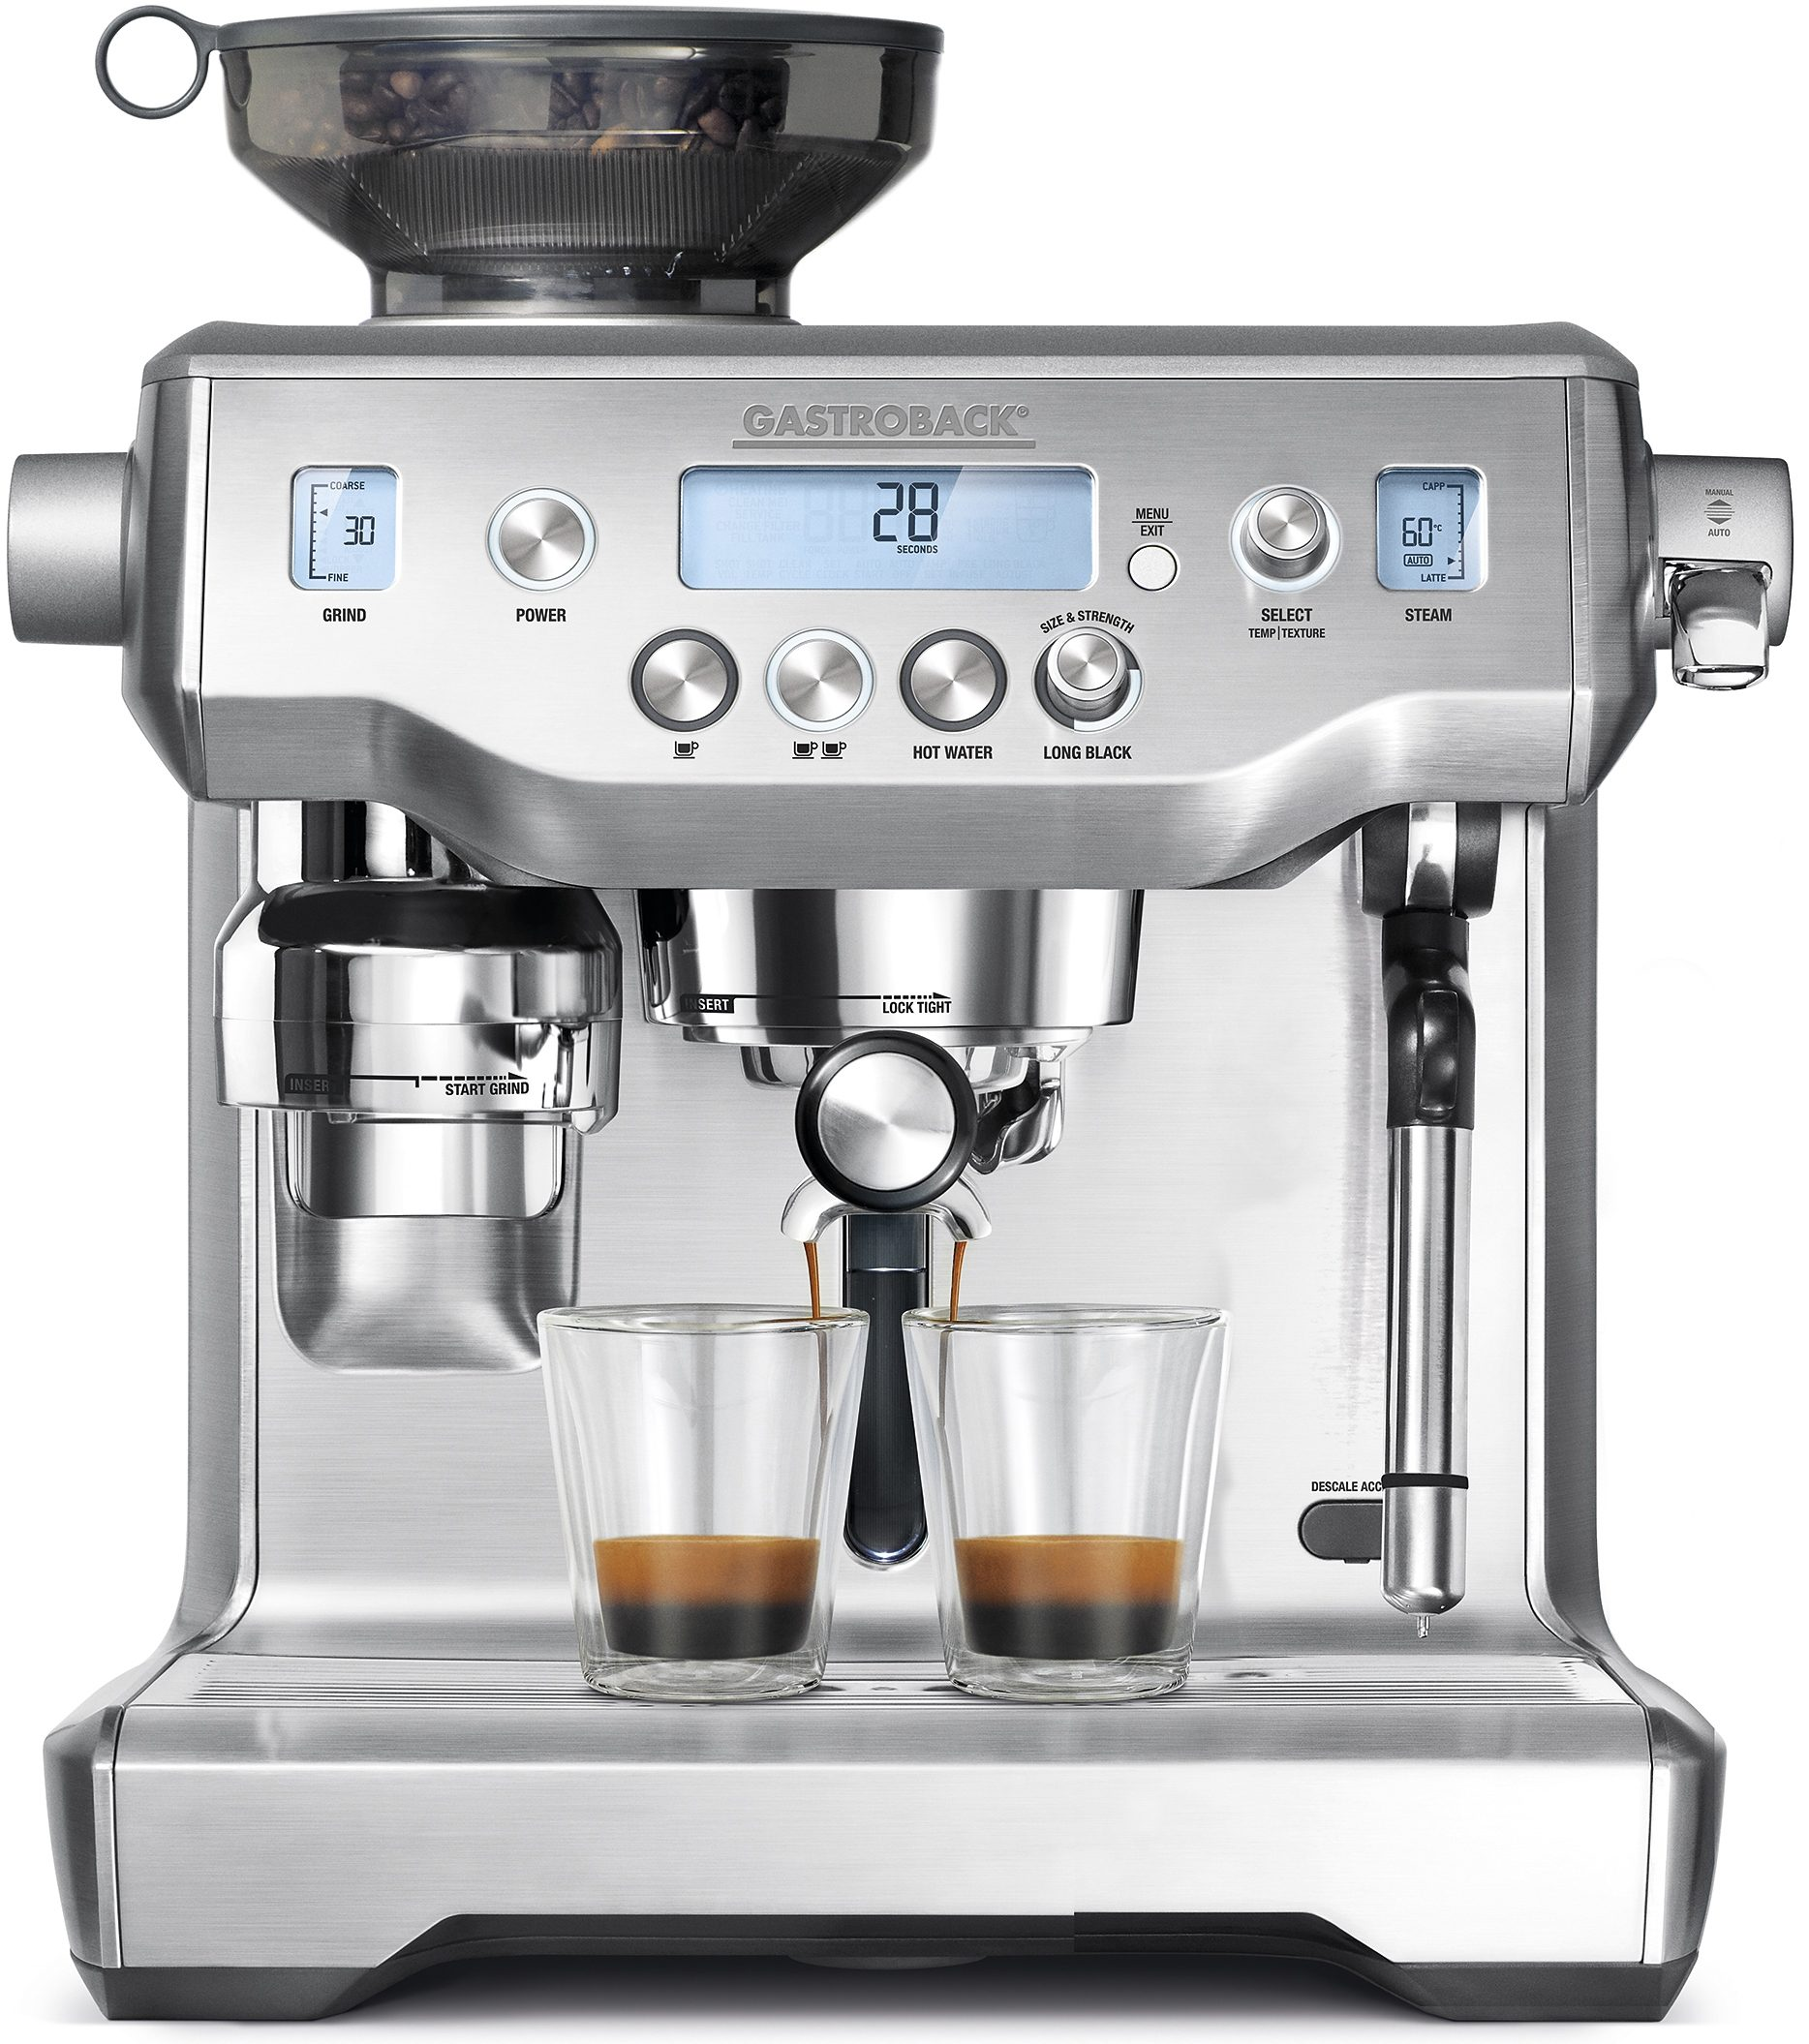 Gastroback Espressomaschine Design Advanced Professional 42640, 15 Bar, 2400 Watt